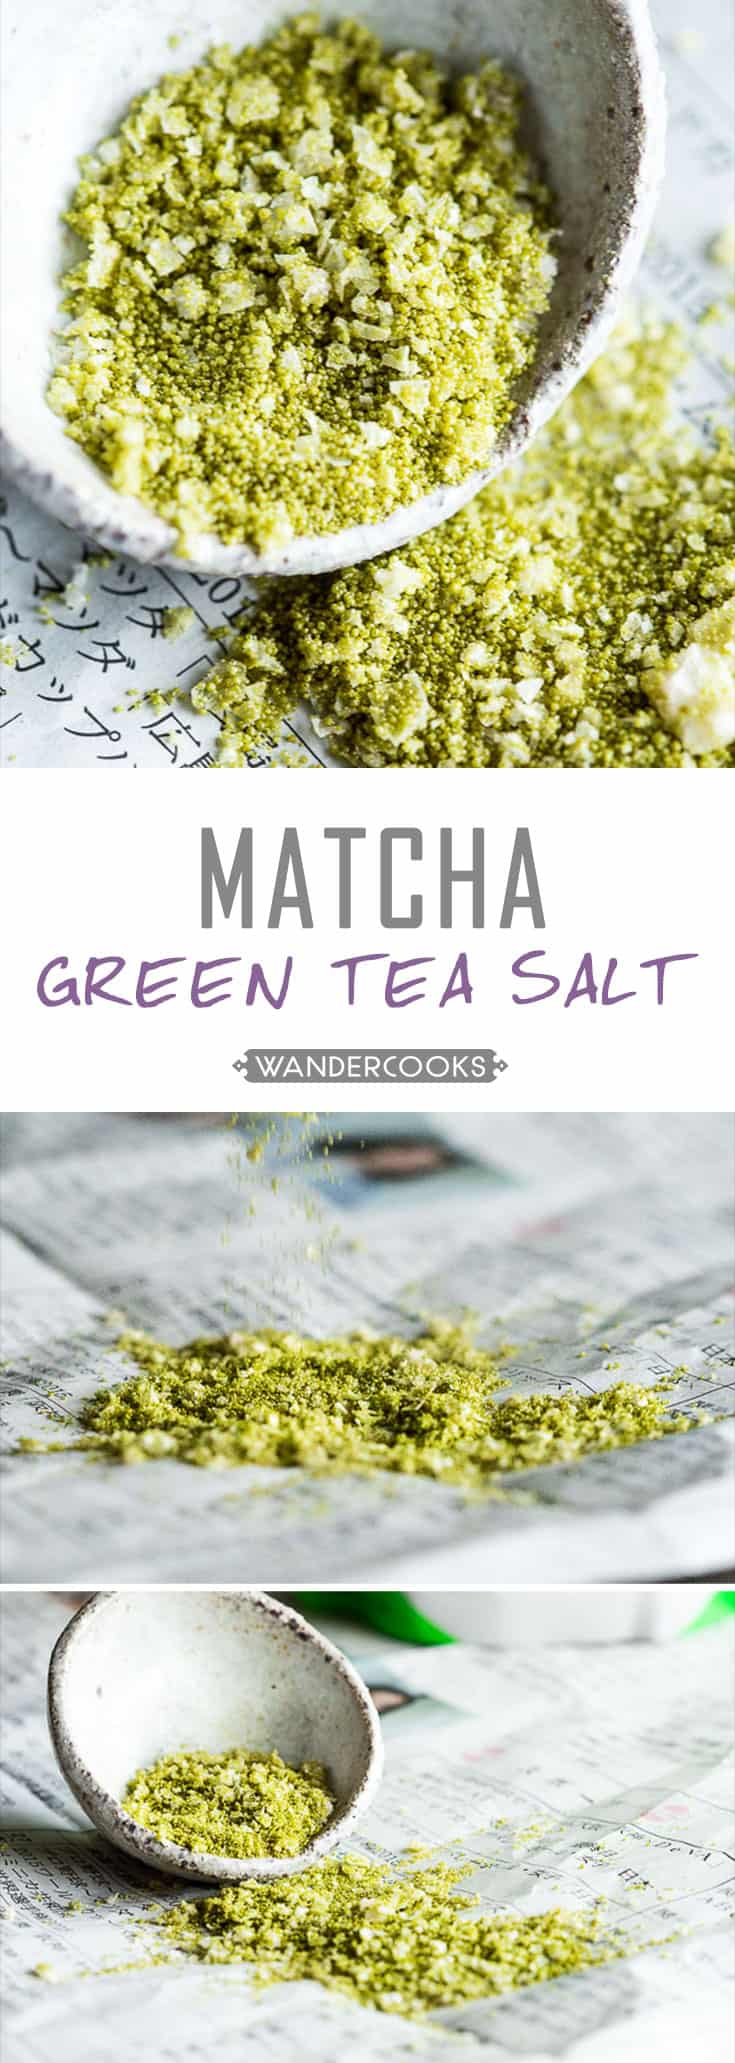 Japanese Matcha Green Tea Salt - Mix and matcha this seasoning recipe to a variety of dishes including popcorn, meat, tempura - or even on your fruit. A simple, quick sprinkle adds an awesome umami kick. Vegan & Vegetarian. | wandercooks.com